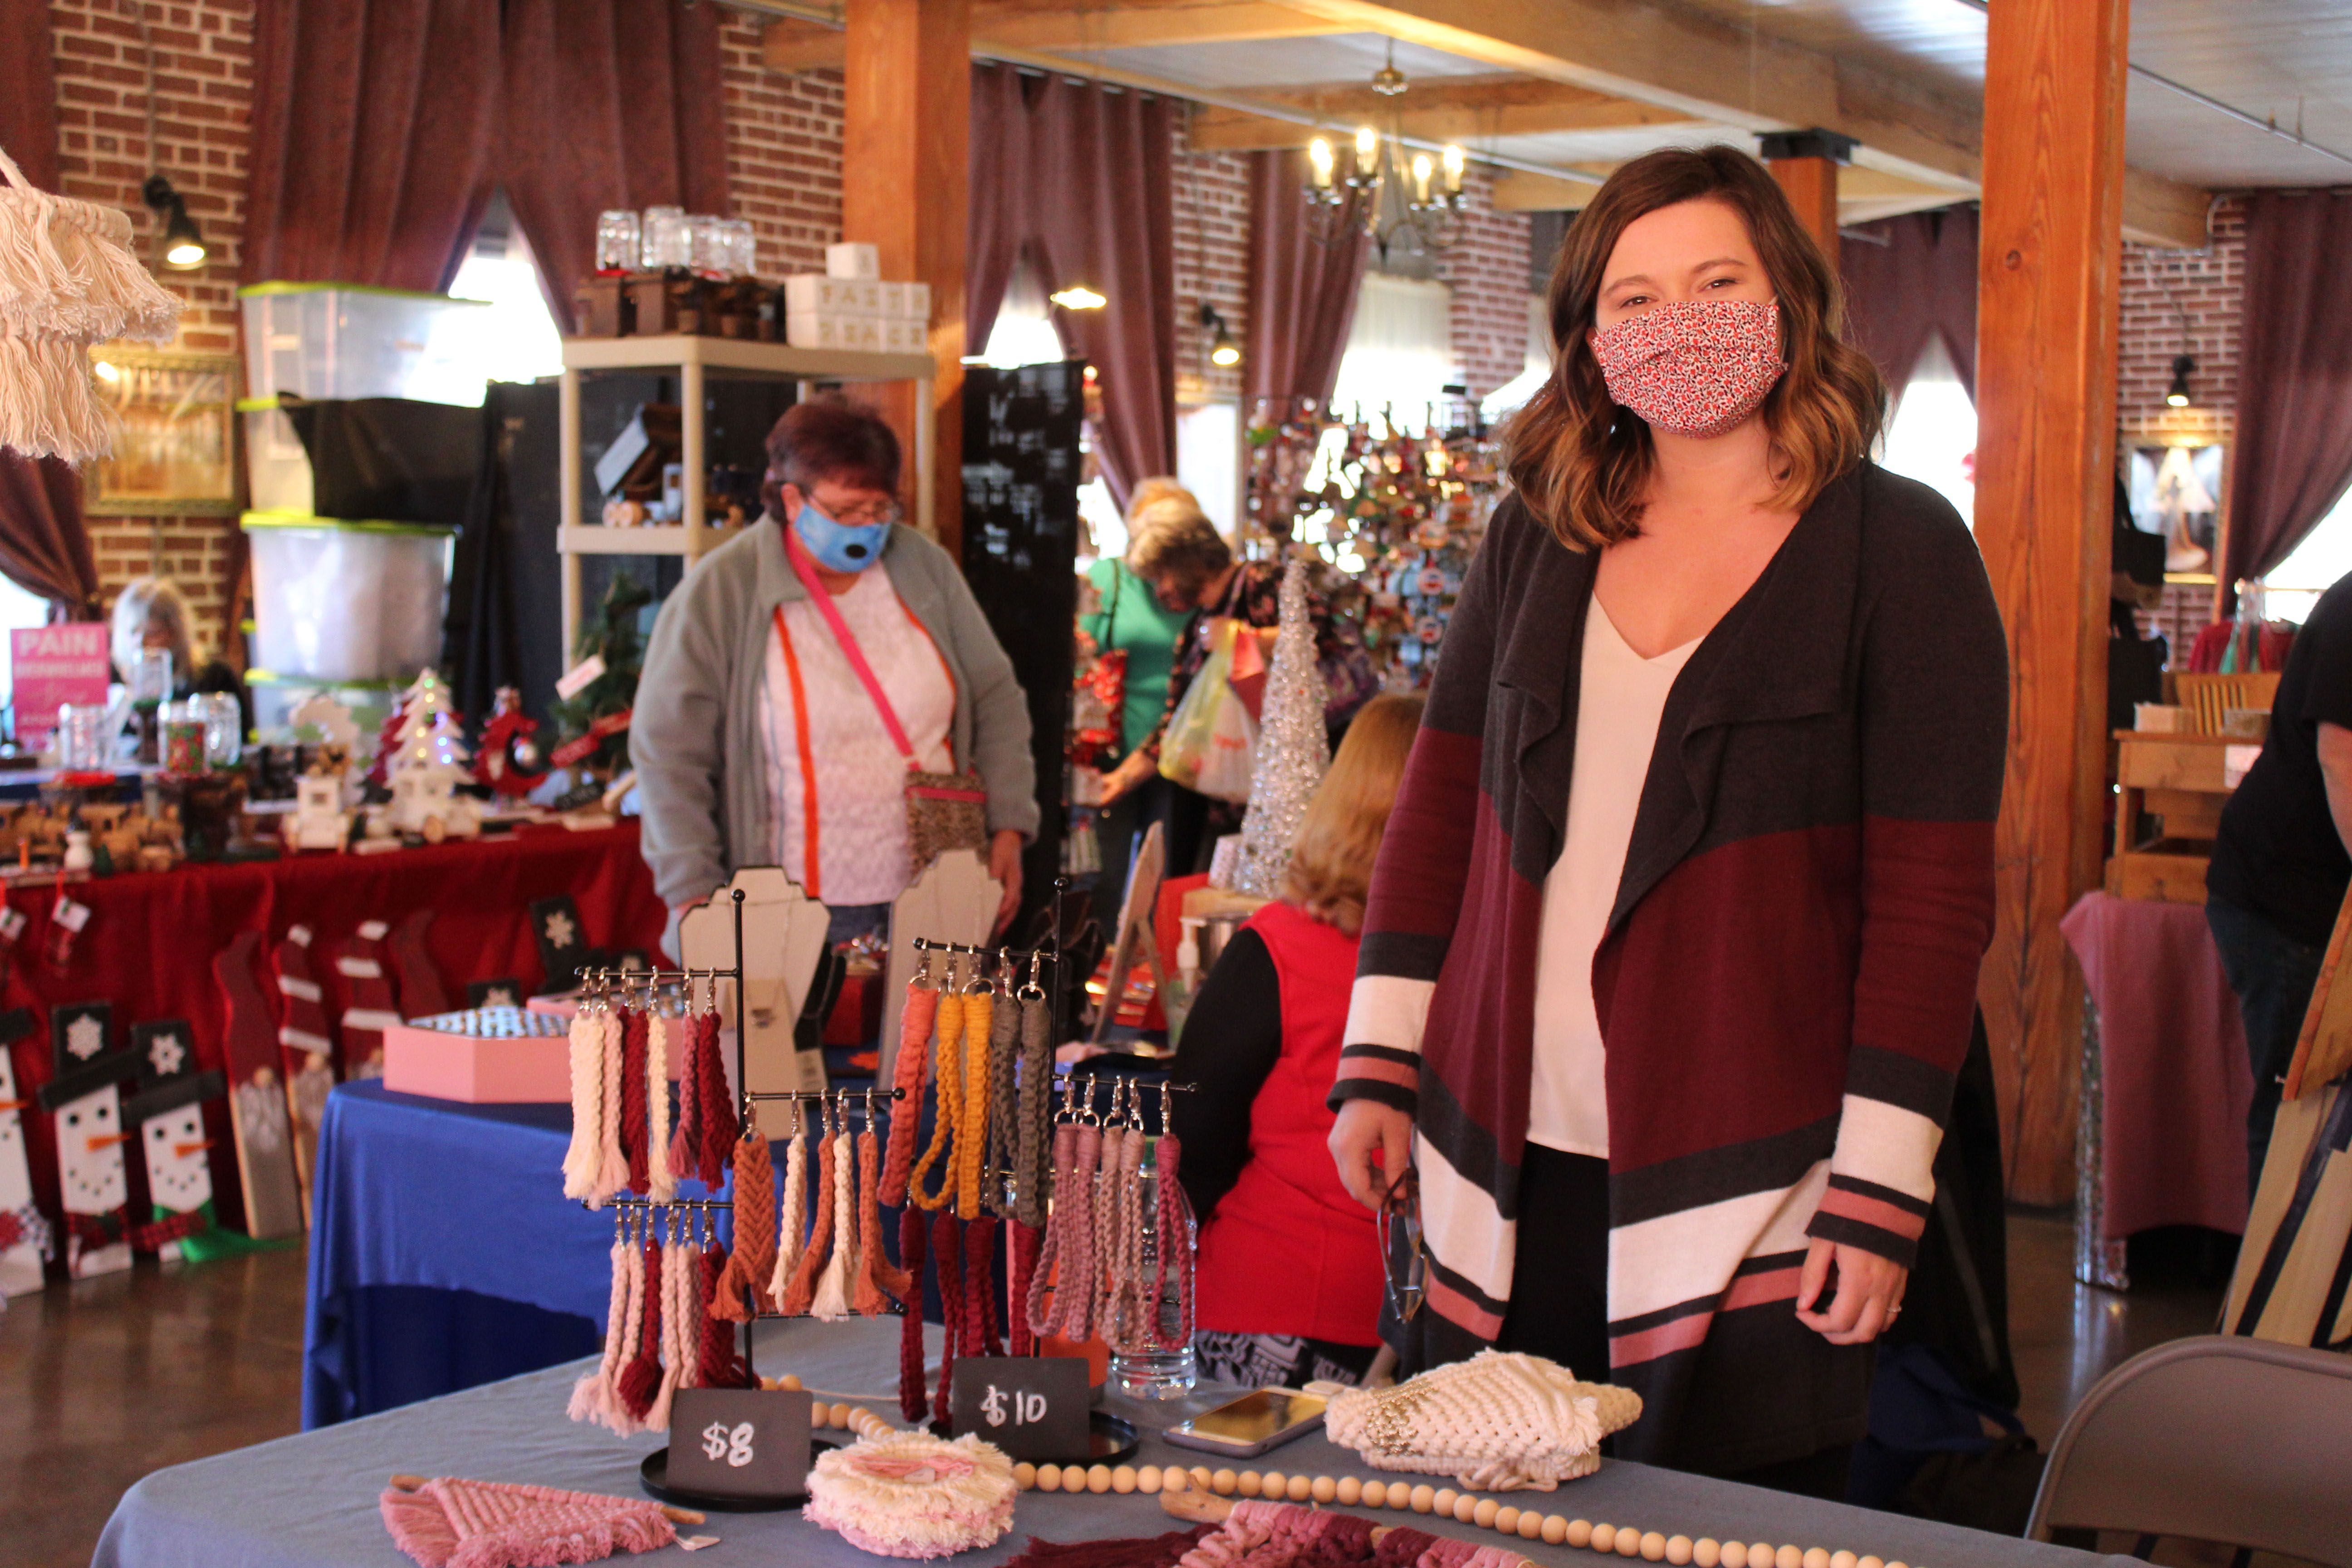 Mitchell County native Brittney King keeps watch over her booth at the Spruce Pine Southern Christmas Show on Saturday, Nov. 28 at the Cross Street Commerce Center. King, who heard about the show from a fellow craftsman, was one of 40 vendors set up at the show. (MNJ photo/Juliana Walker)